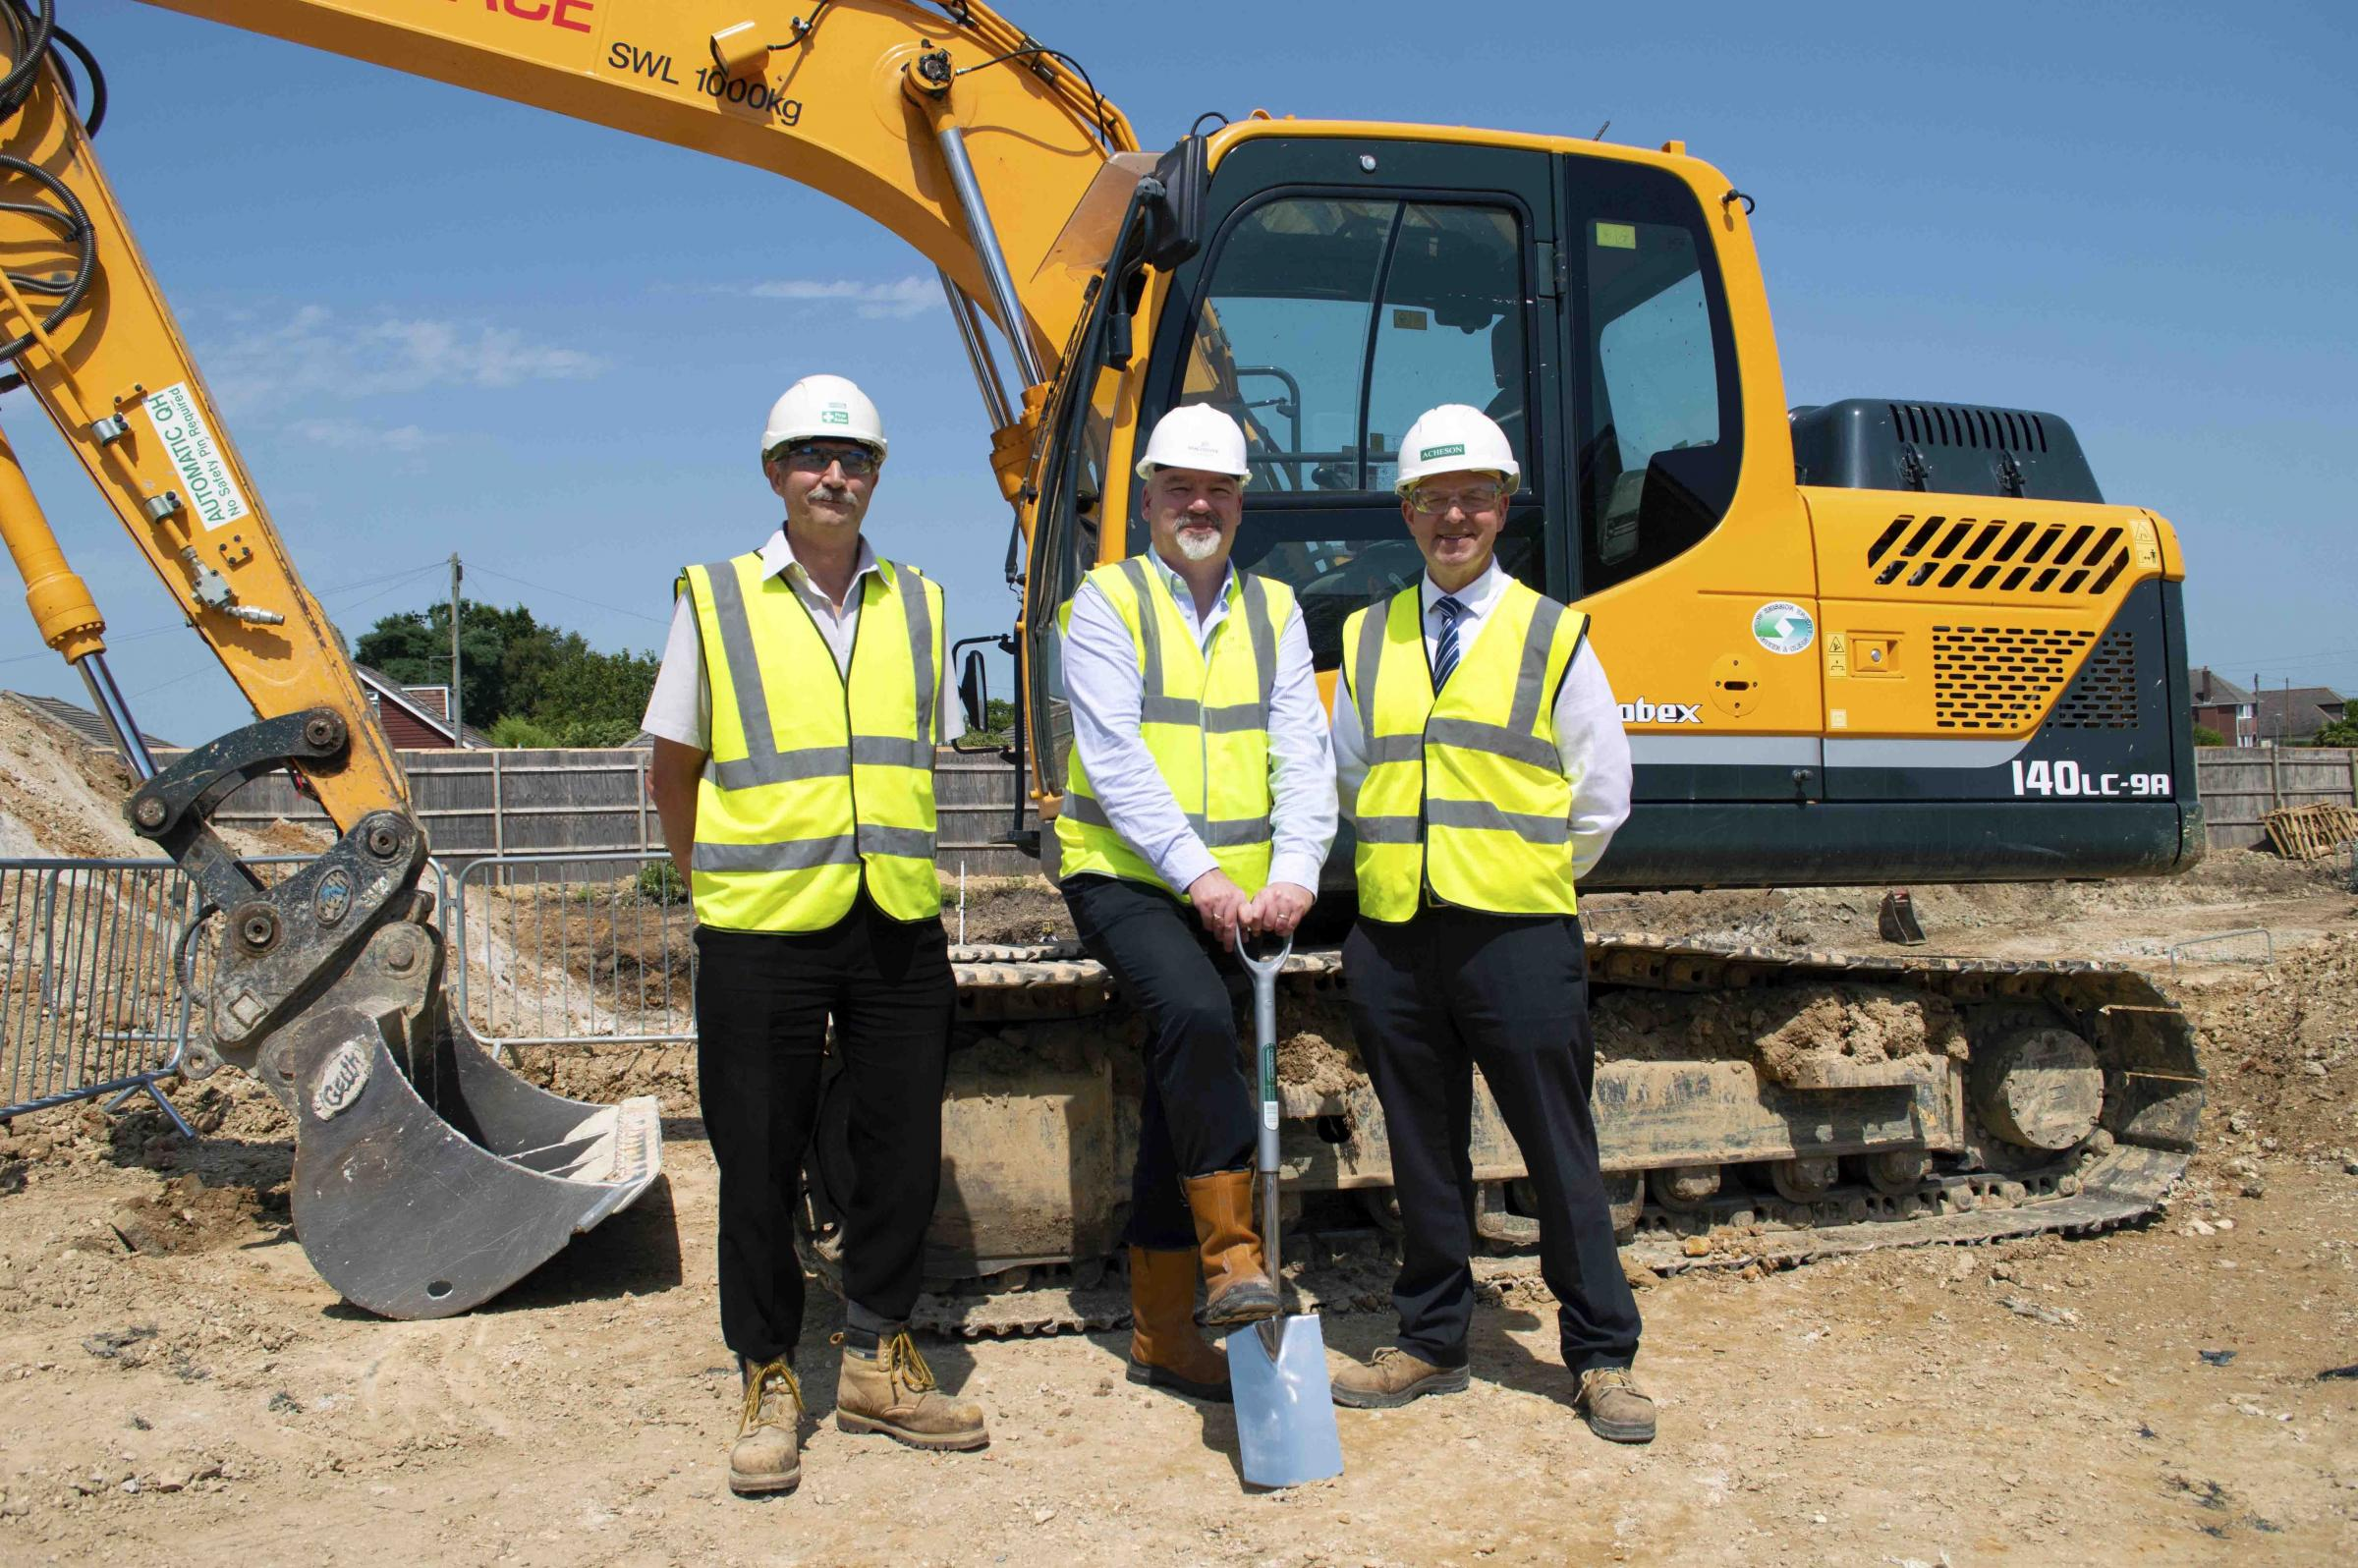 Work begins on Hamworthy's new 68-bed care home